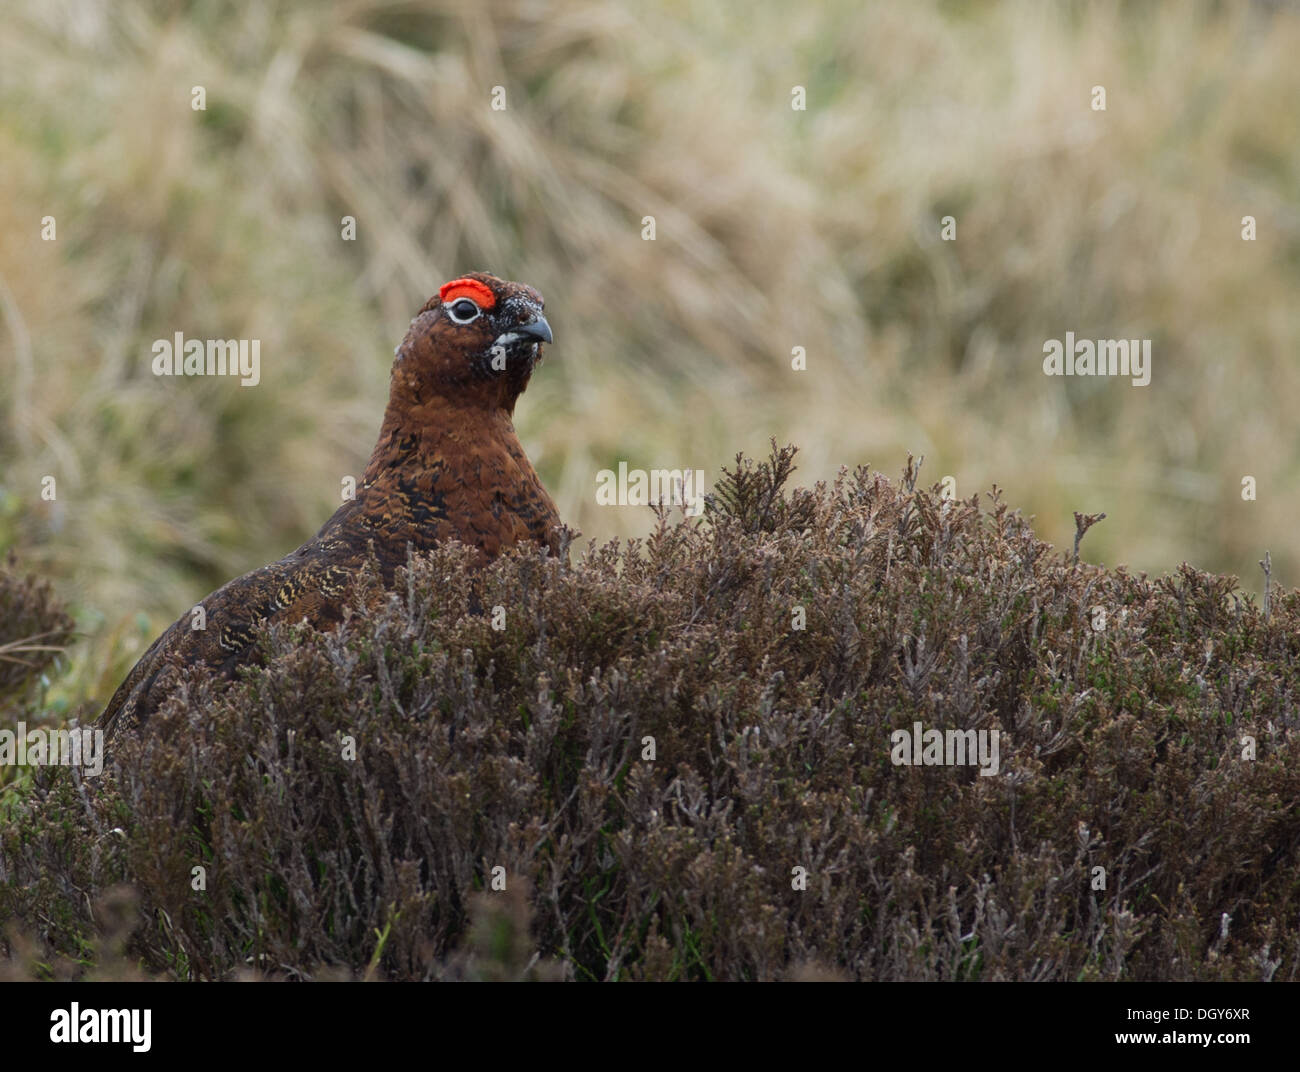 A red grouse standing in the heather, in the Cairngorms - Stock Image